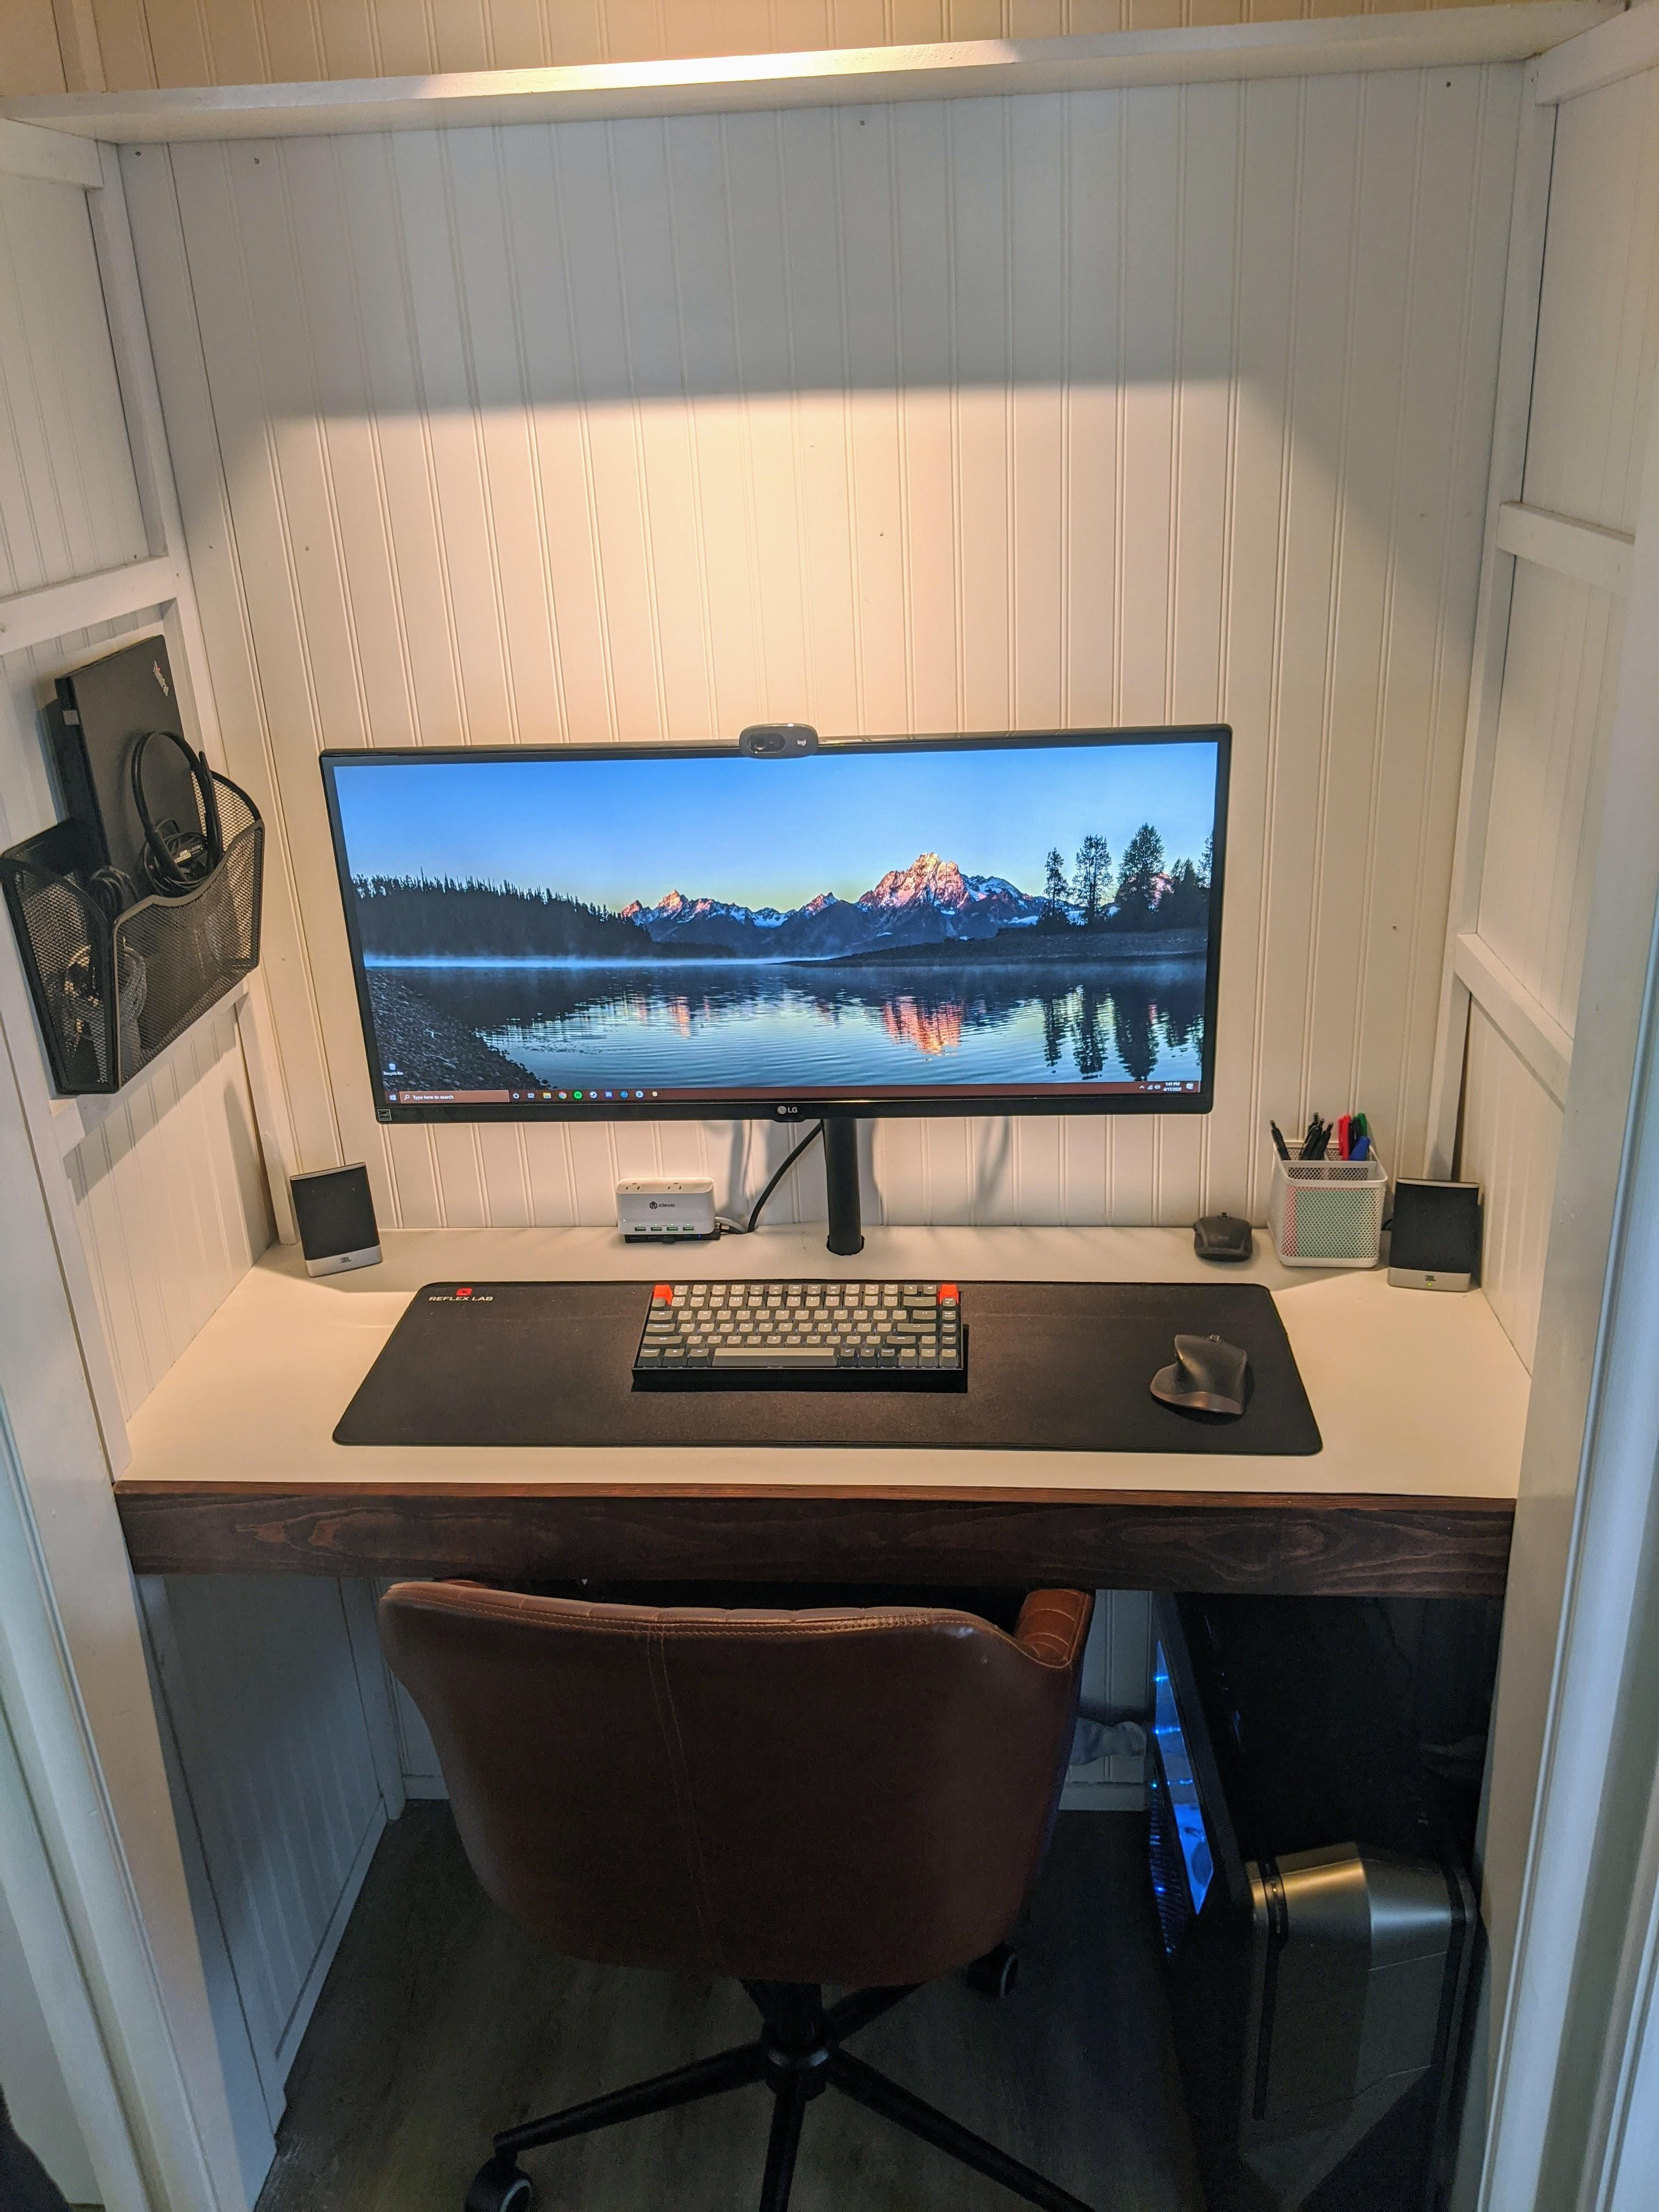 My New Apartment Didn T Have Space For A Desk So I Built A Closet Battlestation More Photos In Comments In 2020 Build A Closet Gaming Desk Setup Computer Setup